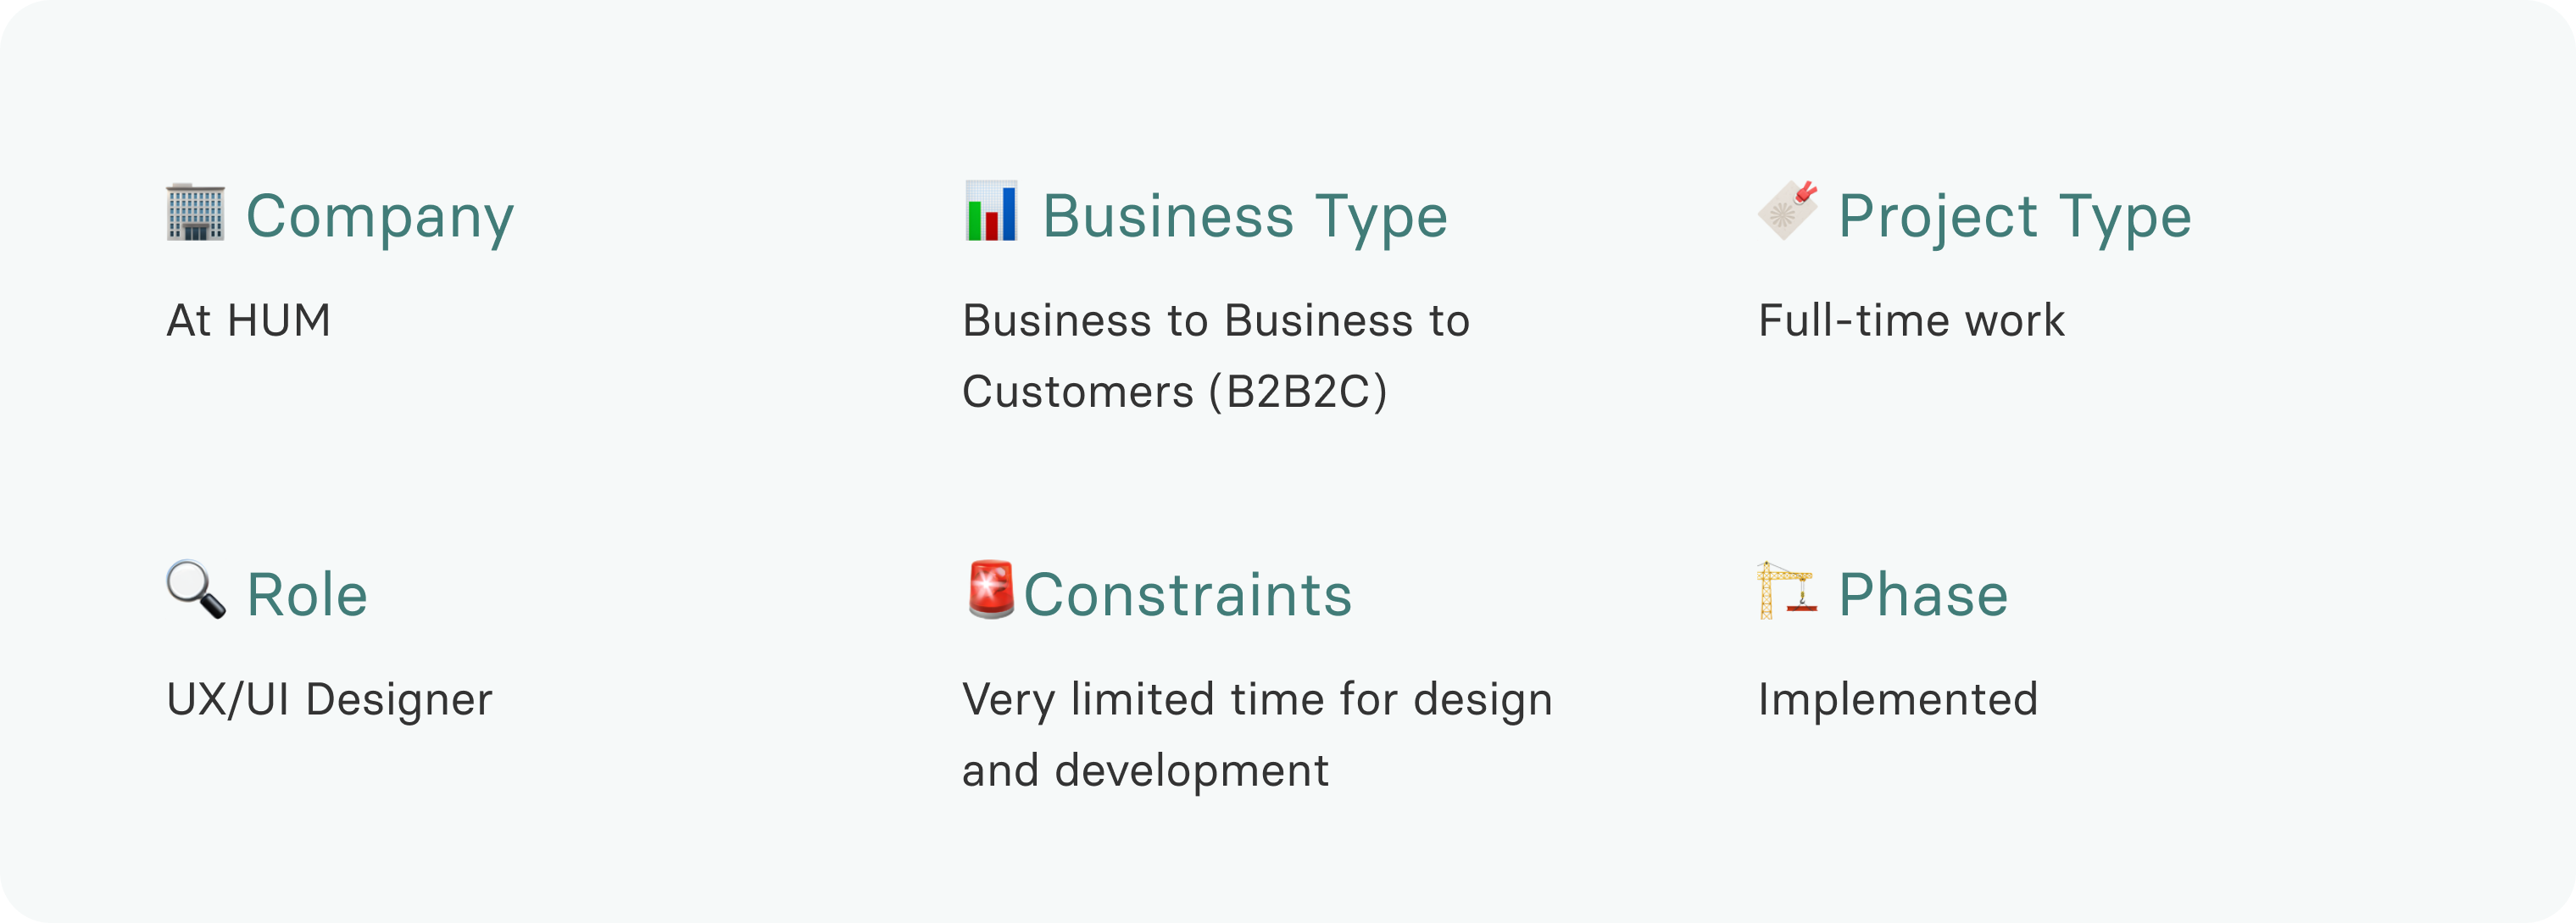 B2B2C Company, Full-time project, UX/UI Designer Role, Constraints: very limited time for design and development.